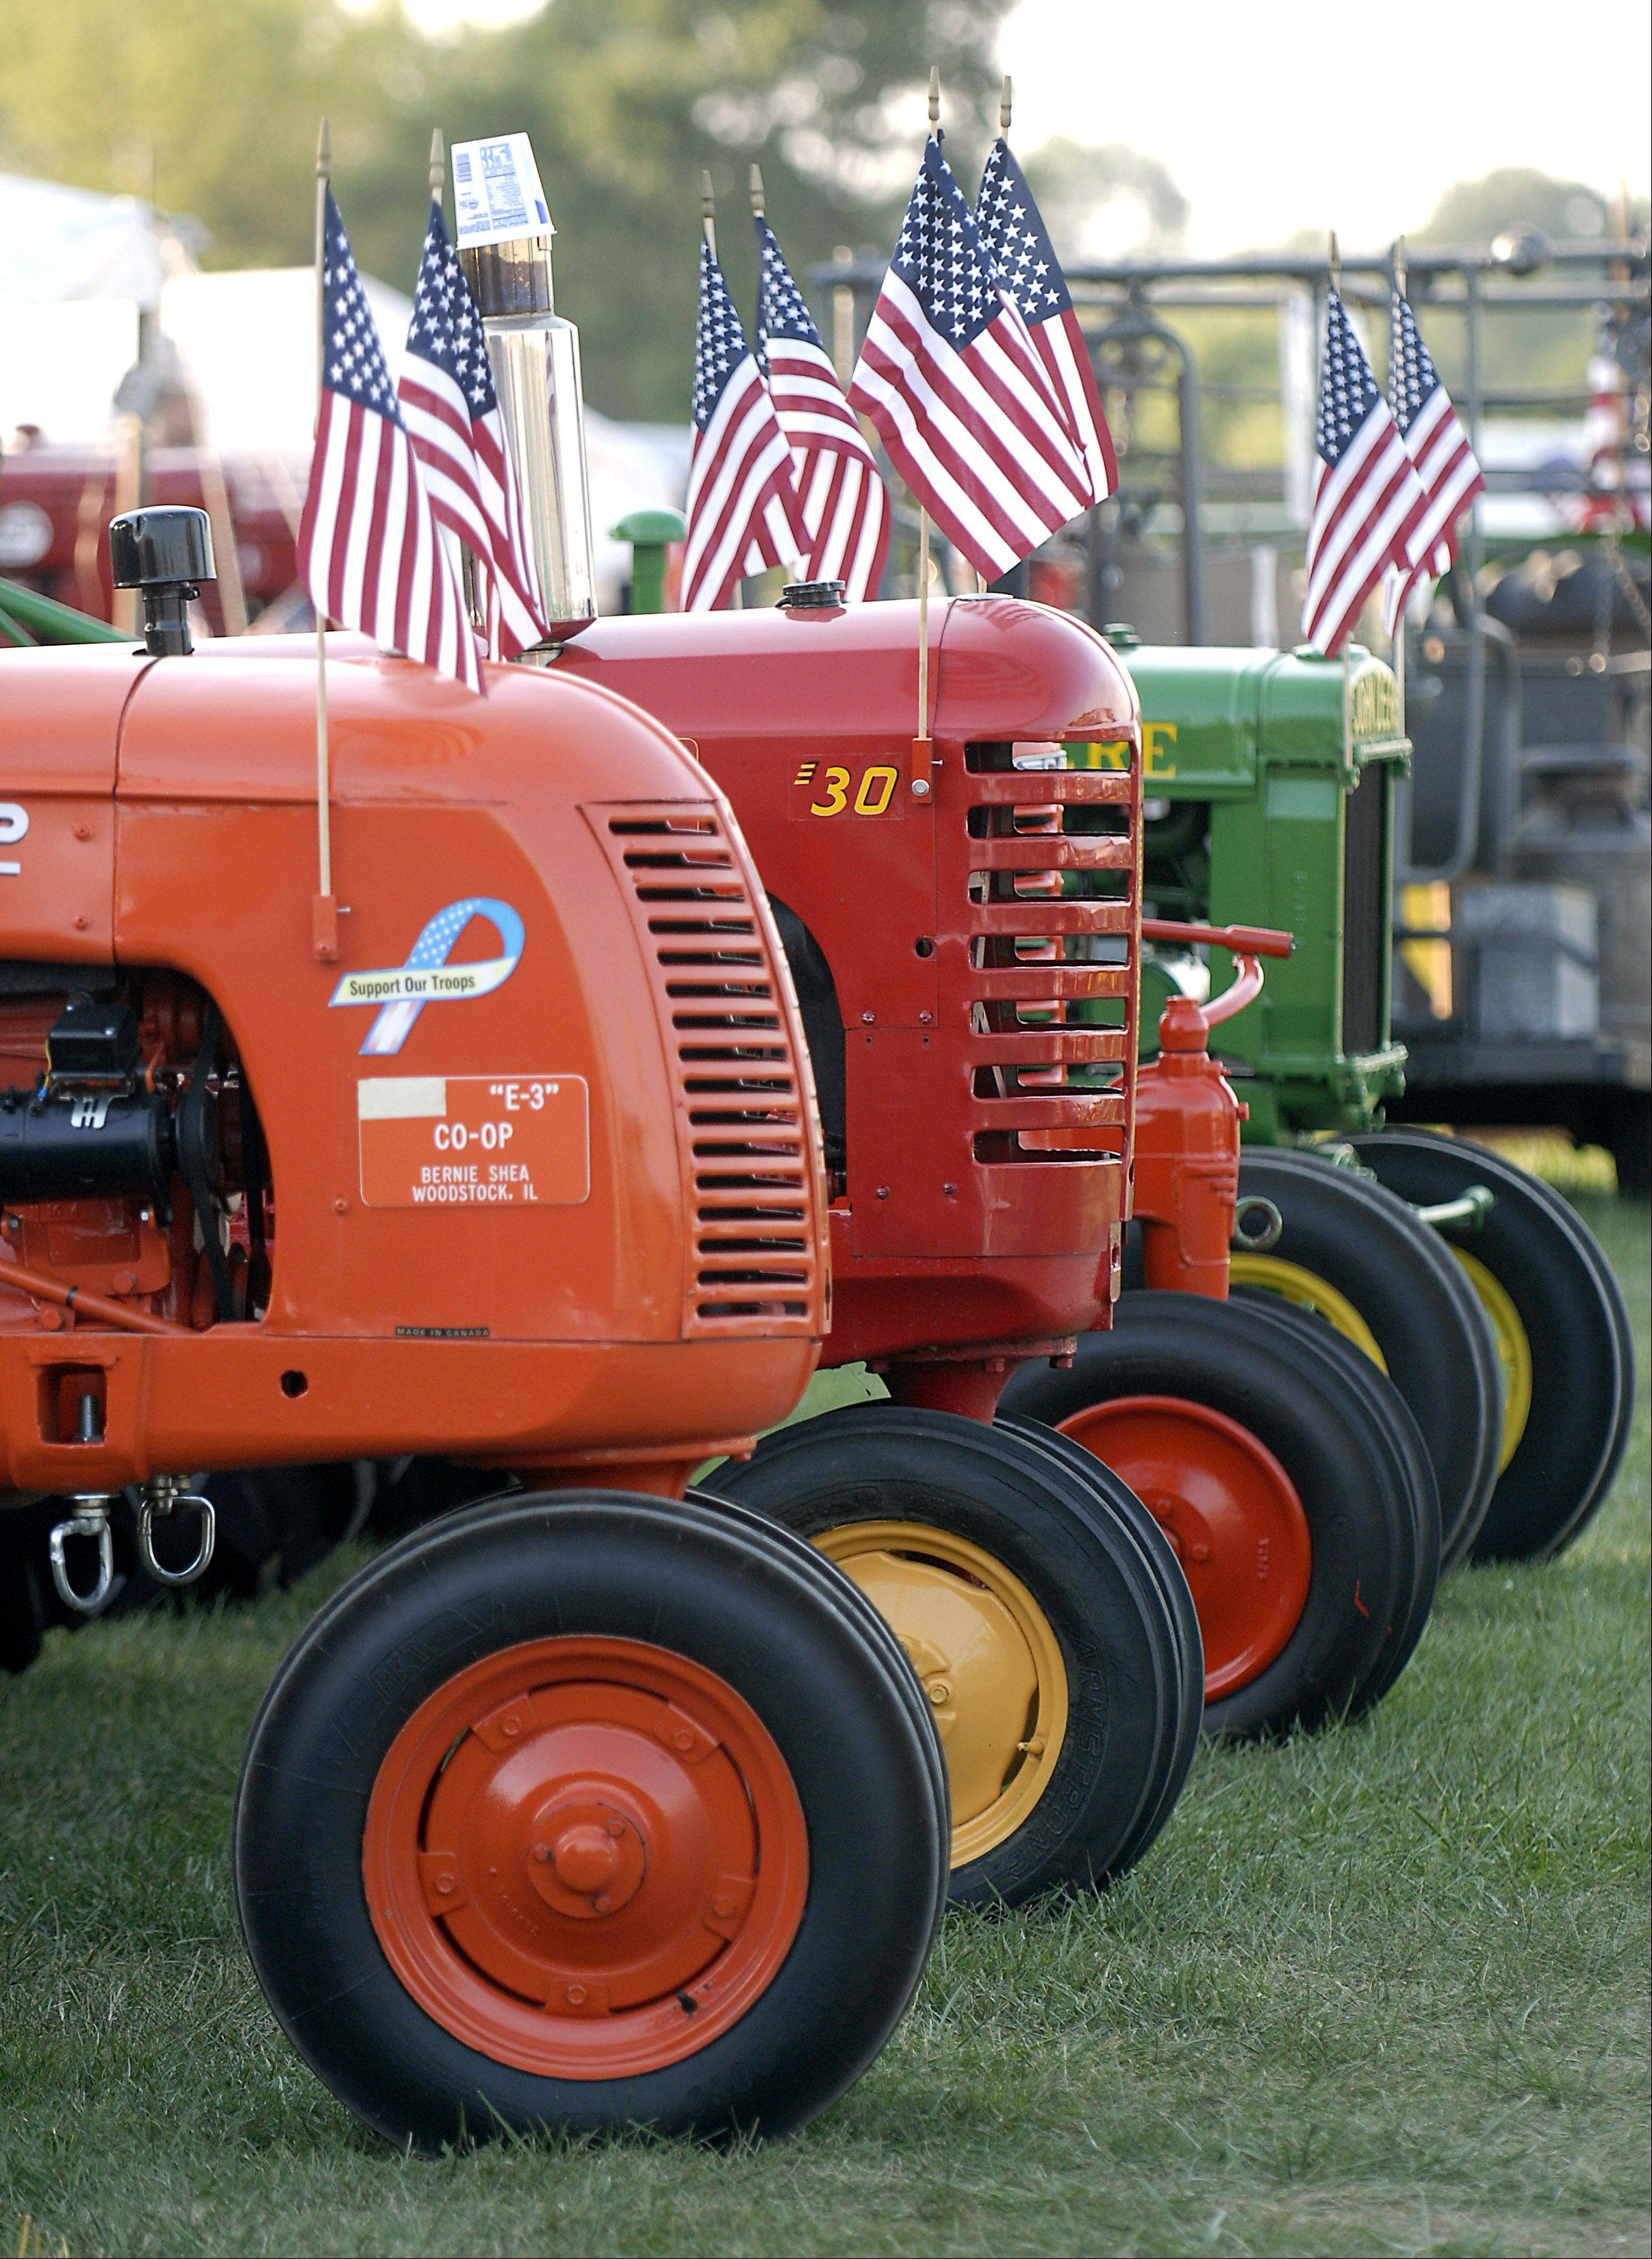 Stars and stripes decorate tractors on display at the McHenry County Fair on Wednesday, August 1.